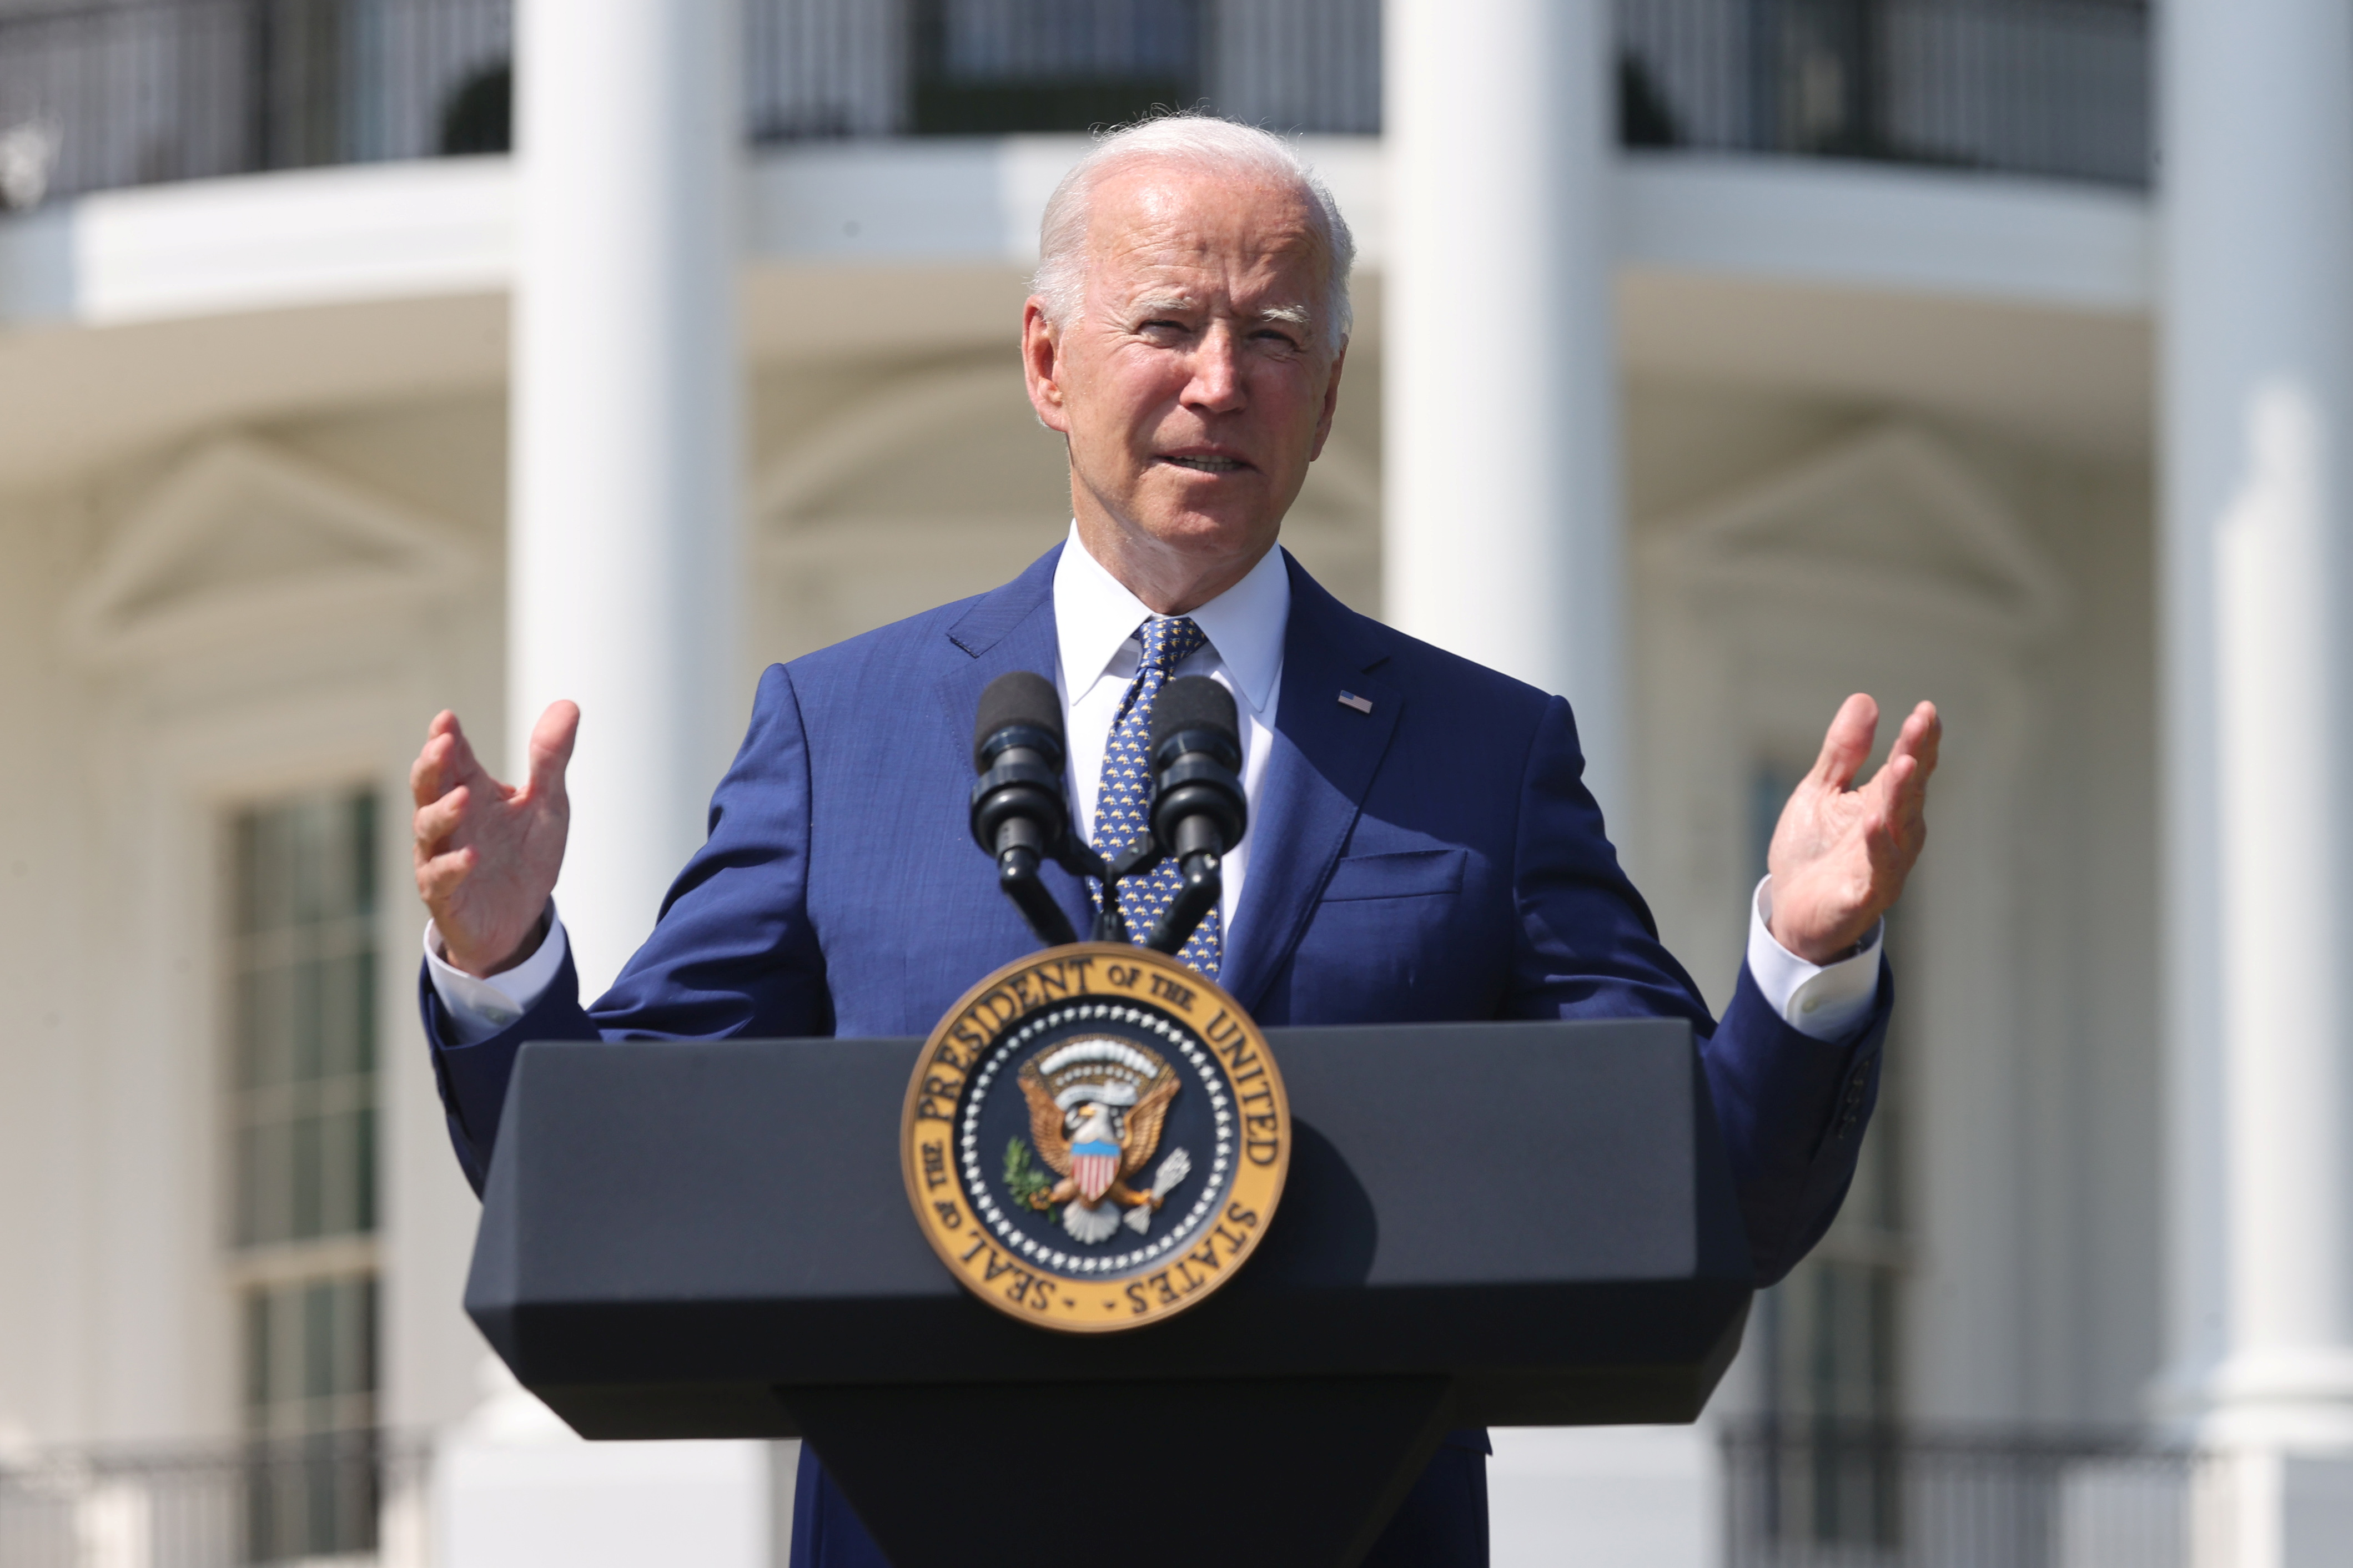 U.S. President Joe Biden speaks during an event for clean cars and trucks at the White House in Washington, U.S. August 5, 2021.  REUTERS/Jonathan Ernst